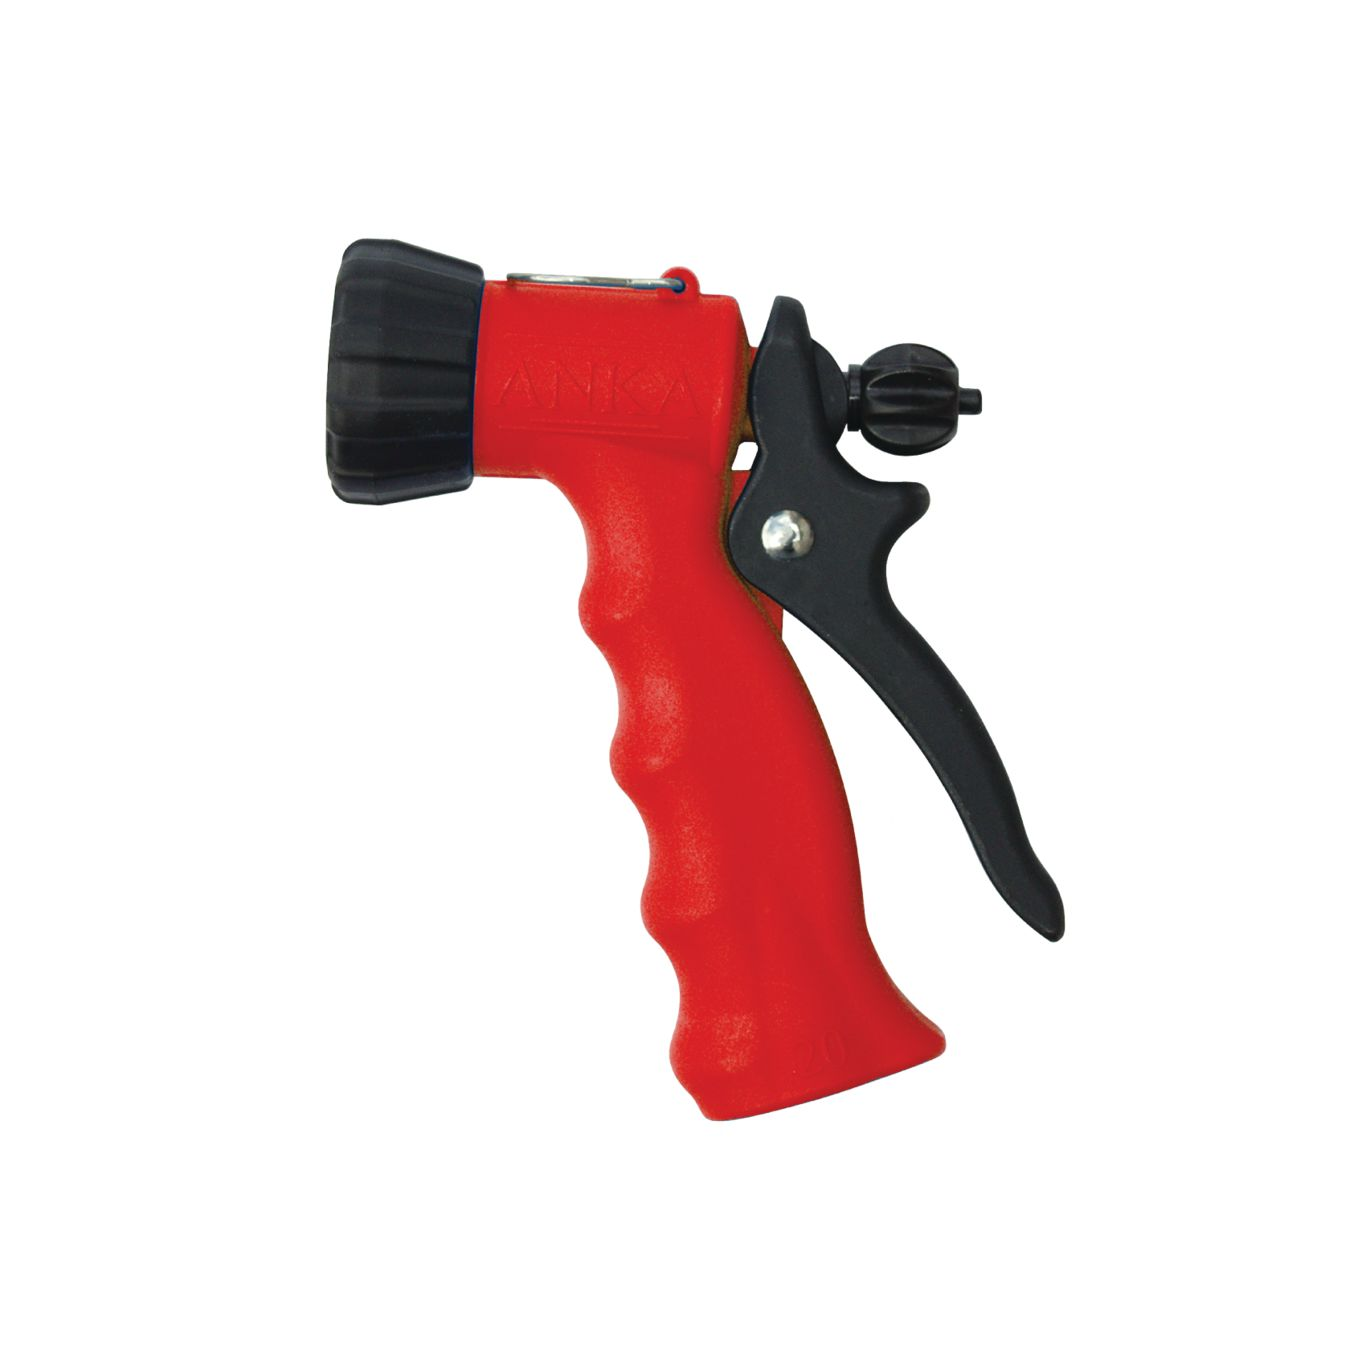 Product Image - Trigger Spray Gun Hot - AHNT20 HW